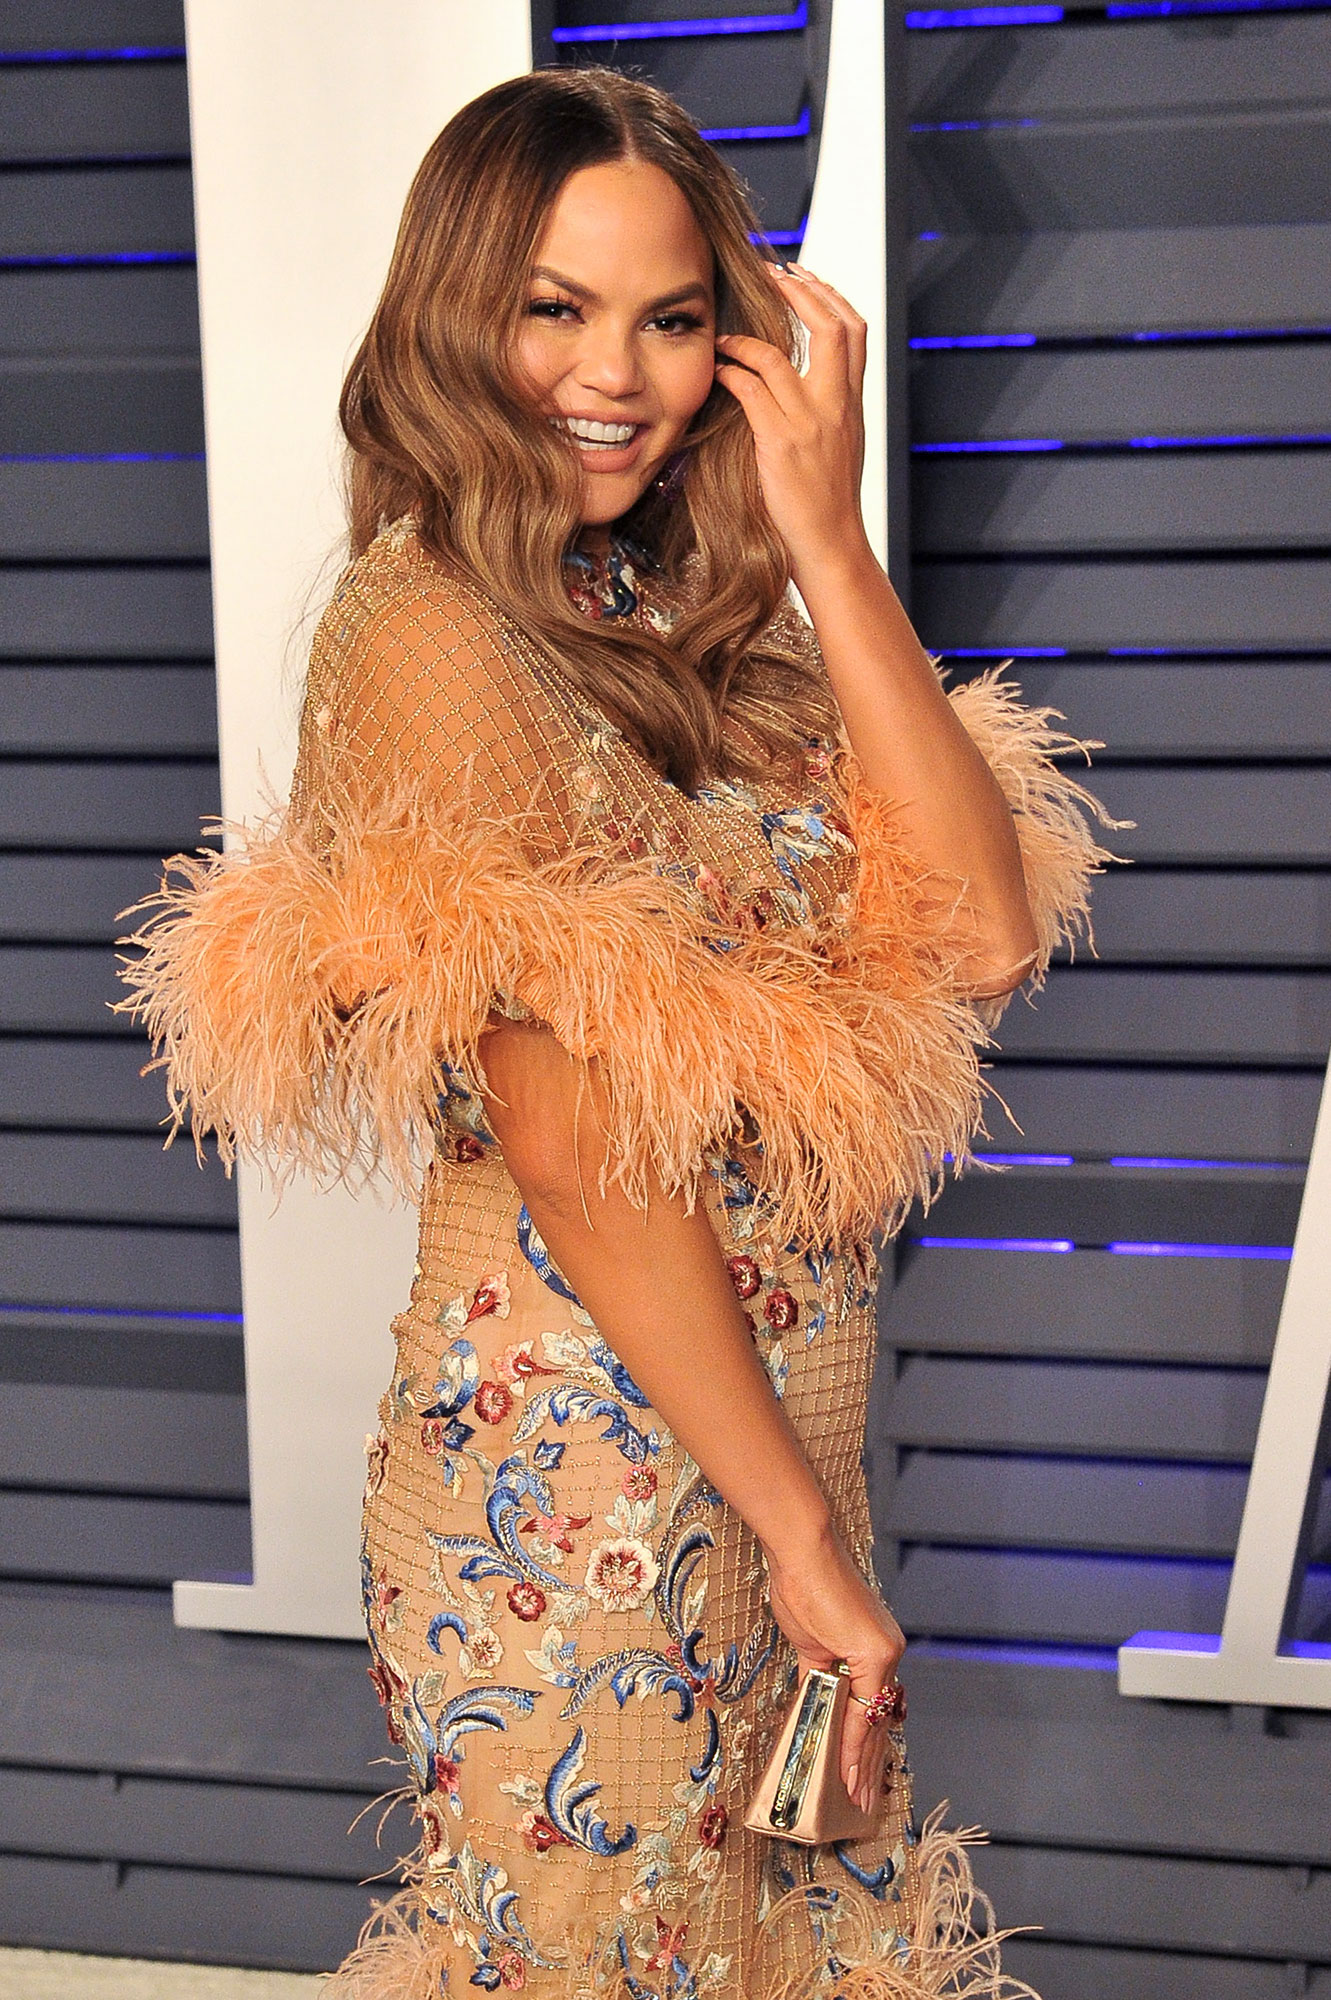 Thanksgiving in March? Chrissy Teigen Was Ready to Celebrate - Chrissy Teigen attends the 2019 Vanity Fair Oscar Party hosted by Radhika Jones at Wallis Annenberg Center for the Performing Arts on February 24, 2019 in Beverly Hills, California.